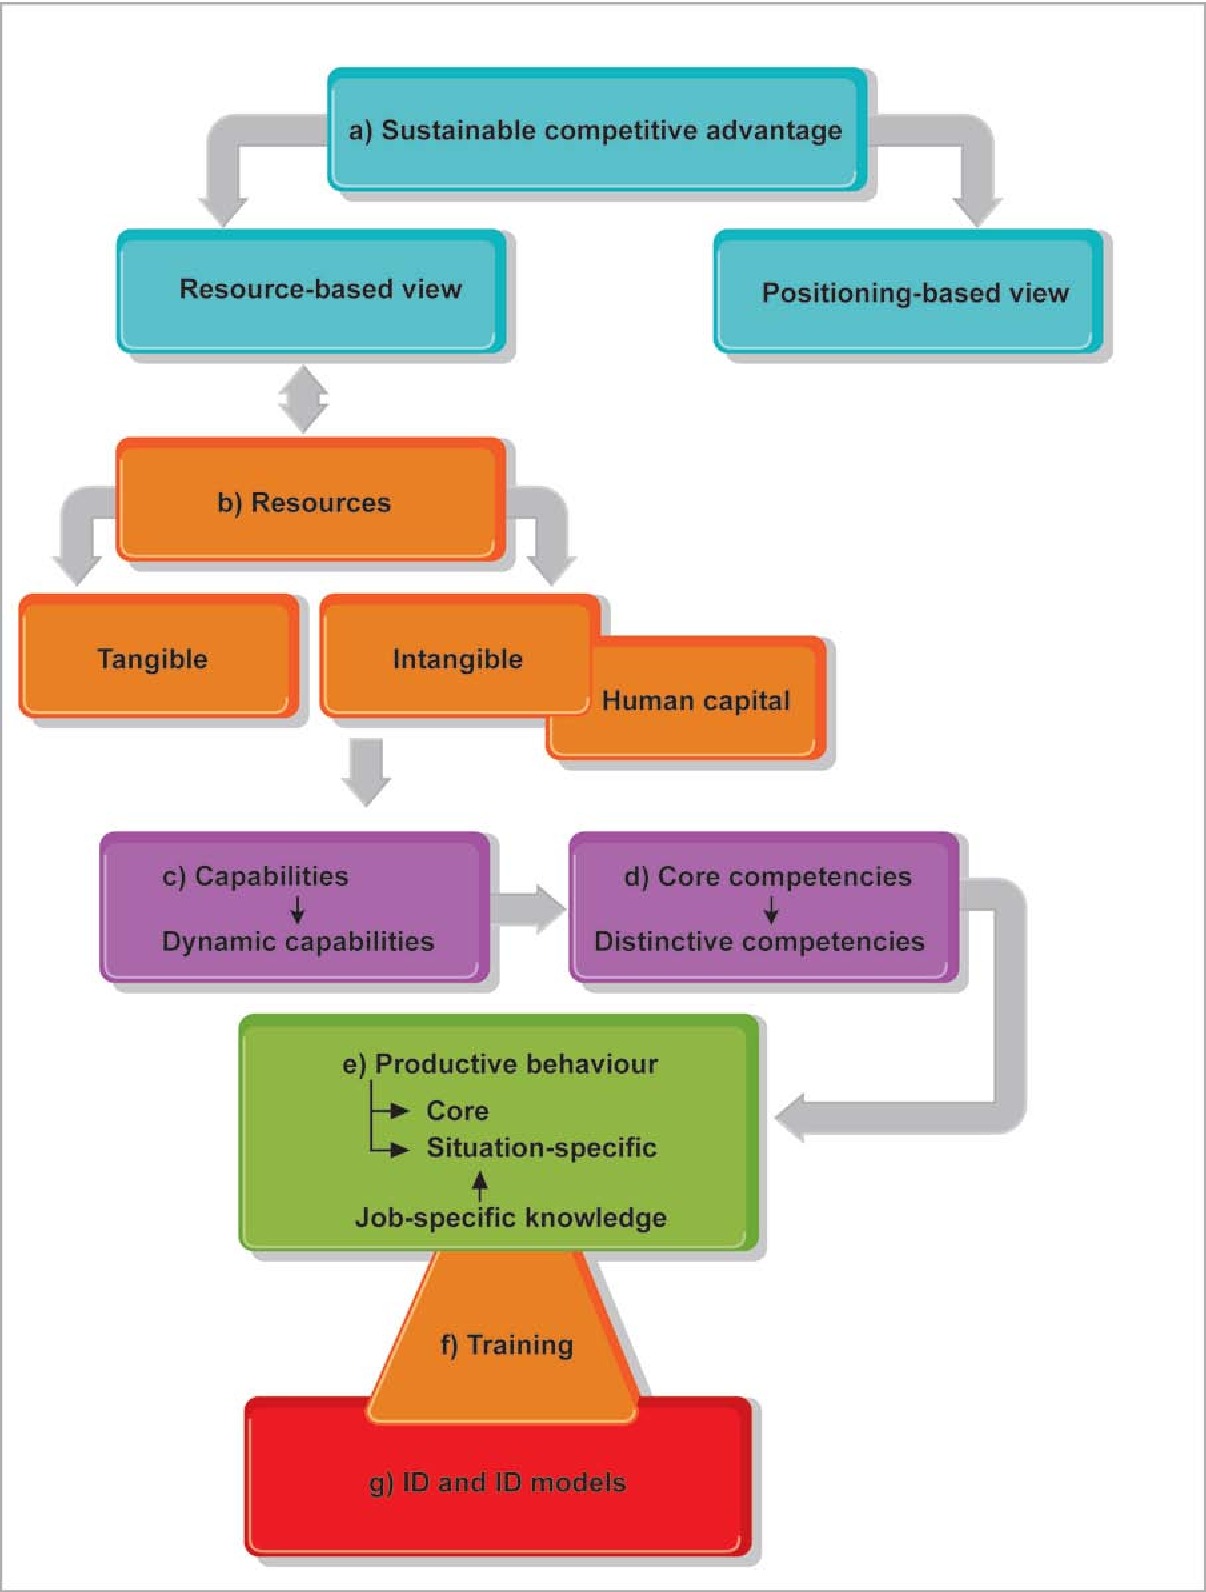 Pdf The Development Of An Instructional Design Model As A Strategic Enabler For Sustainable Competitive Advantage Semantic Scholar